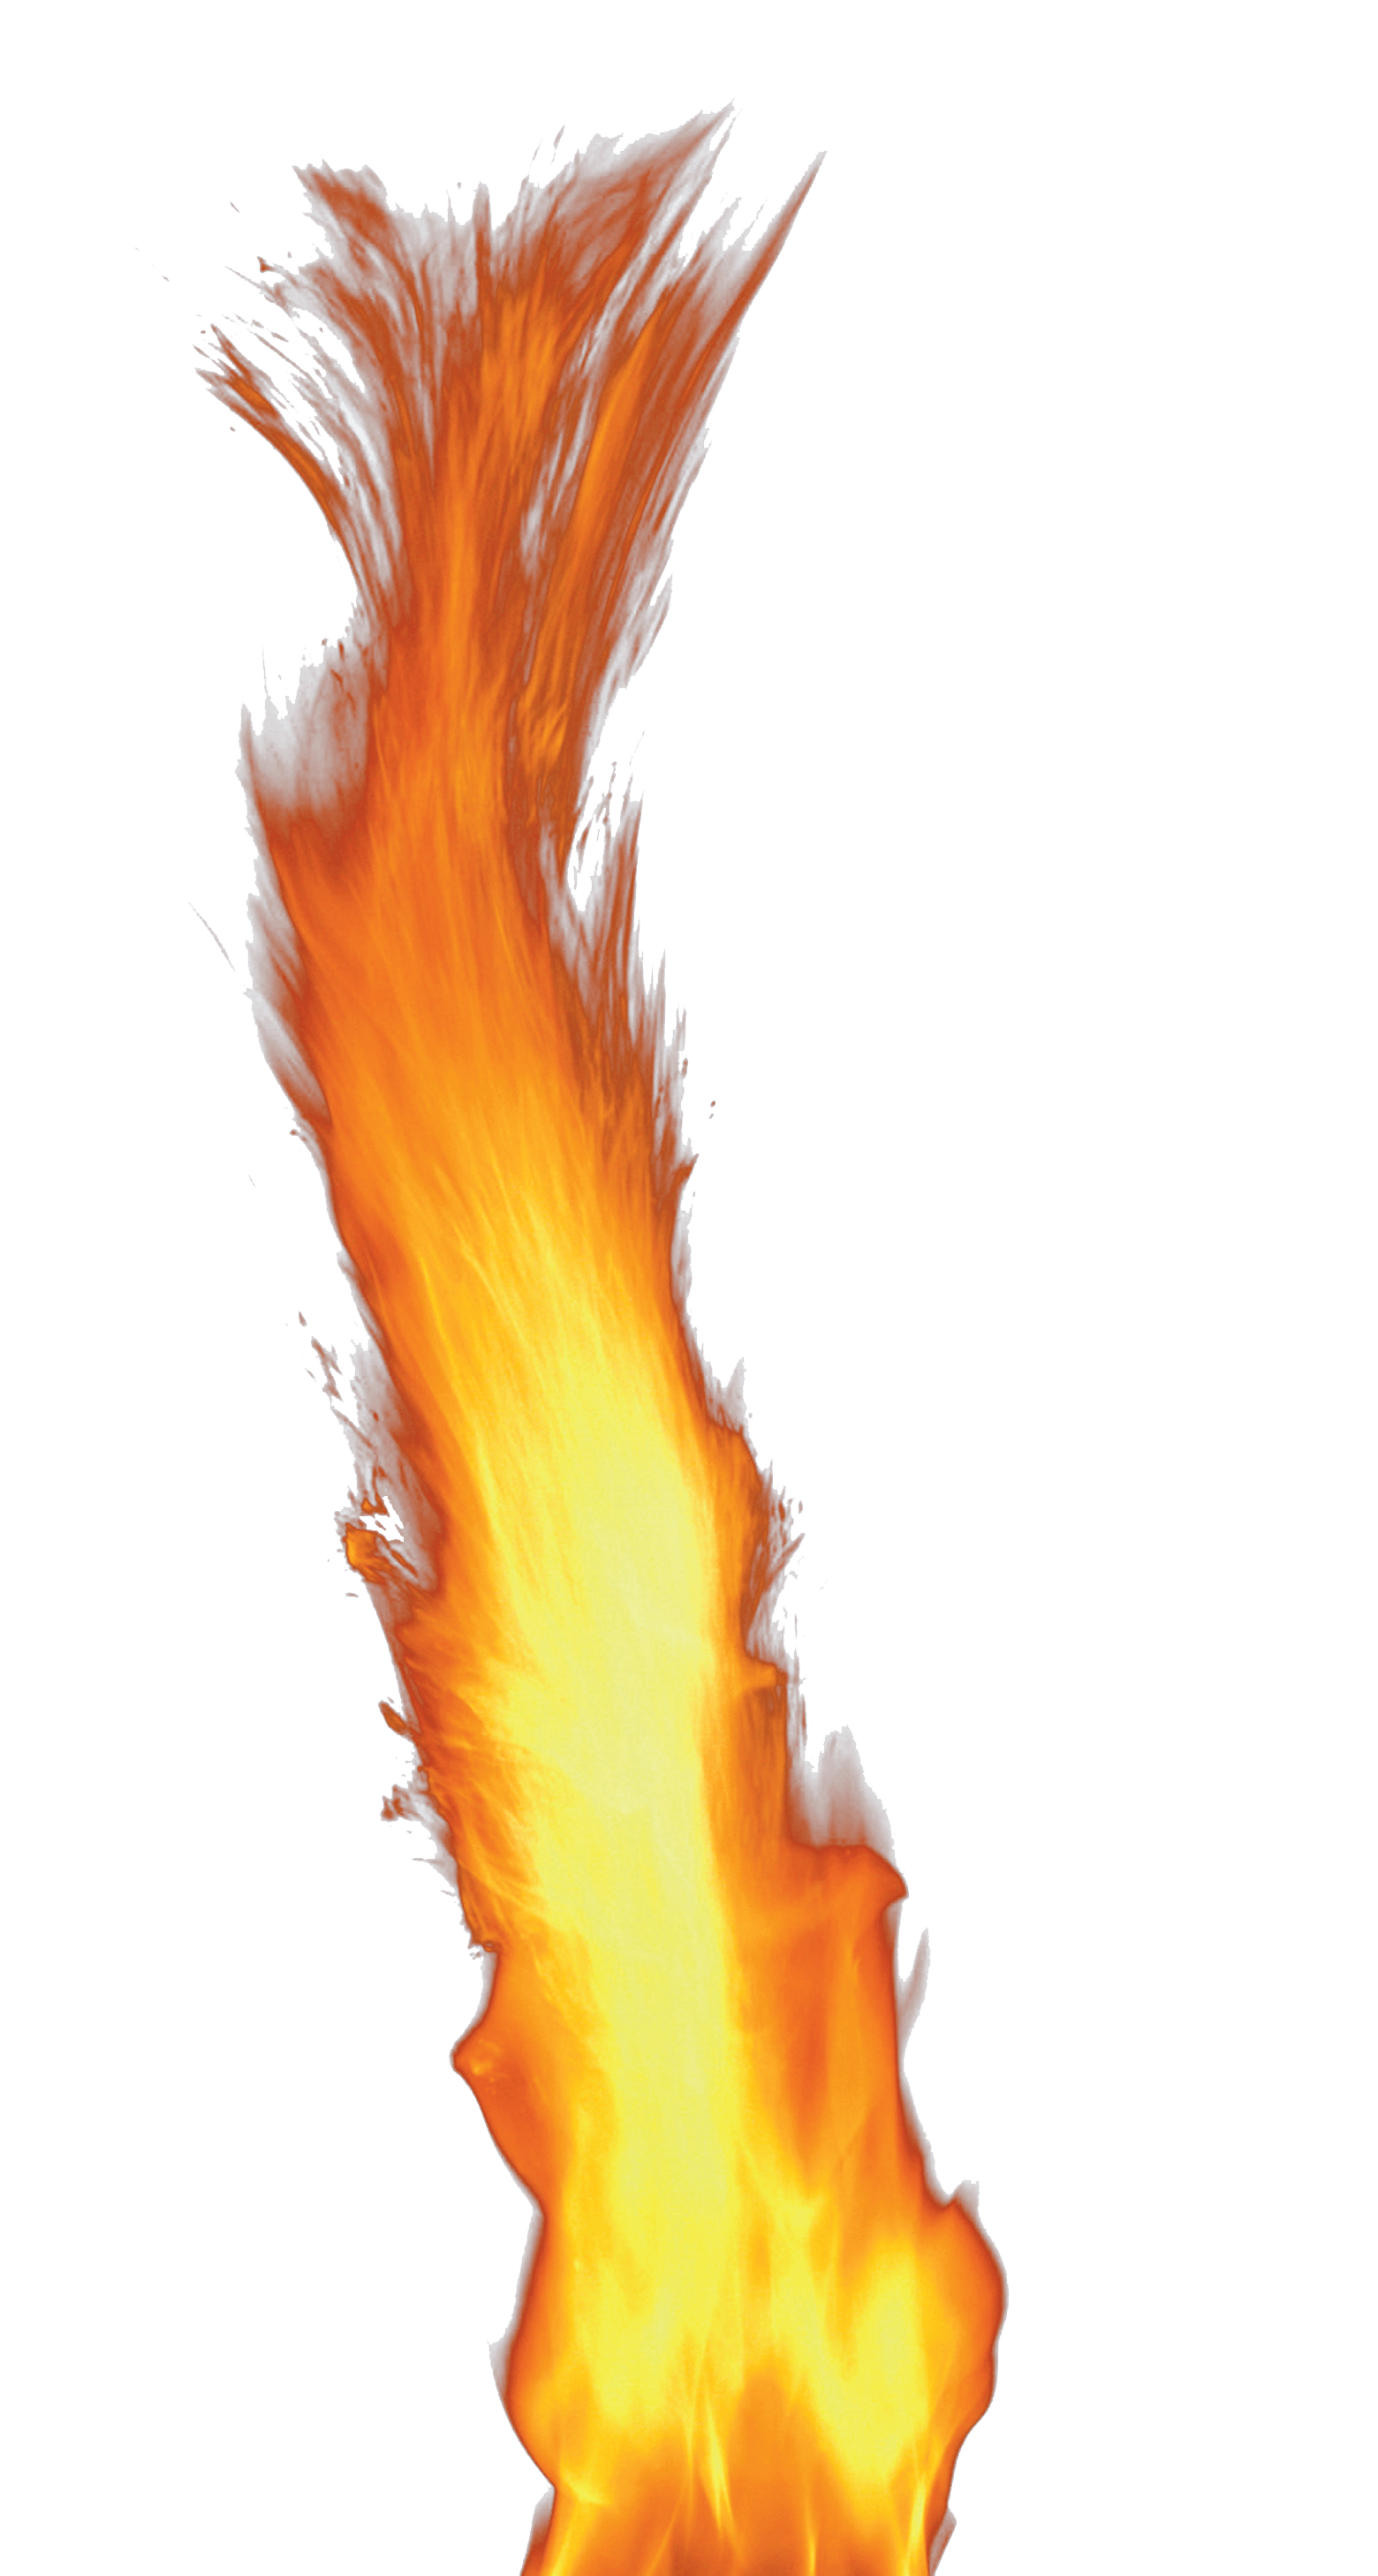 Fuego png. Single flame fire transparent